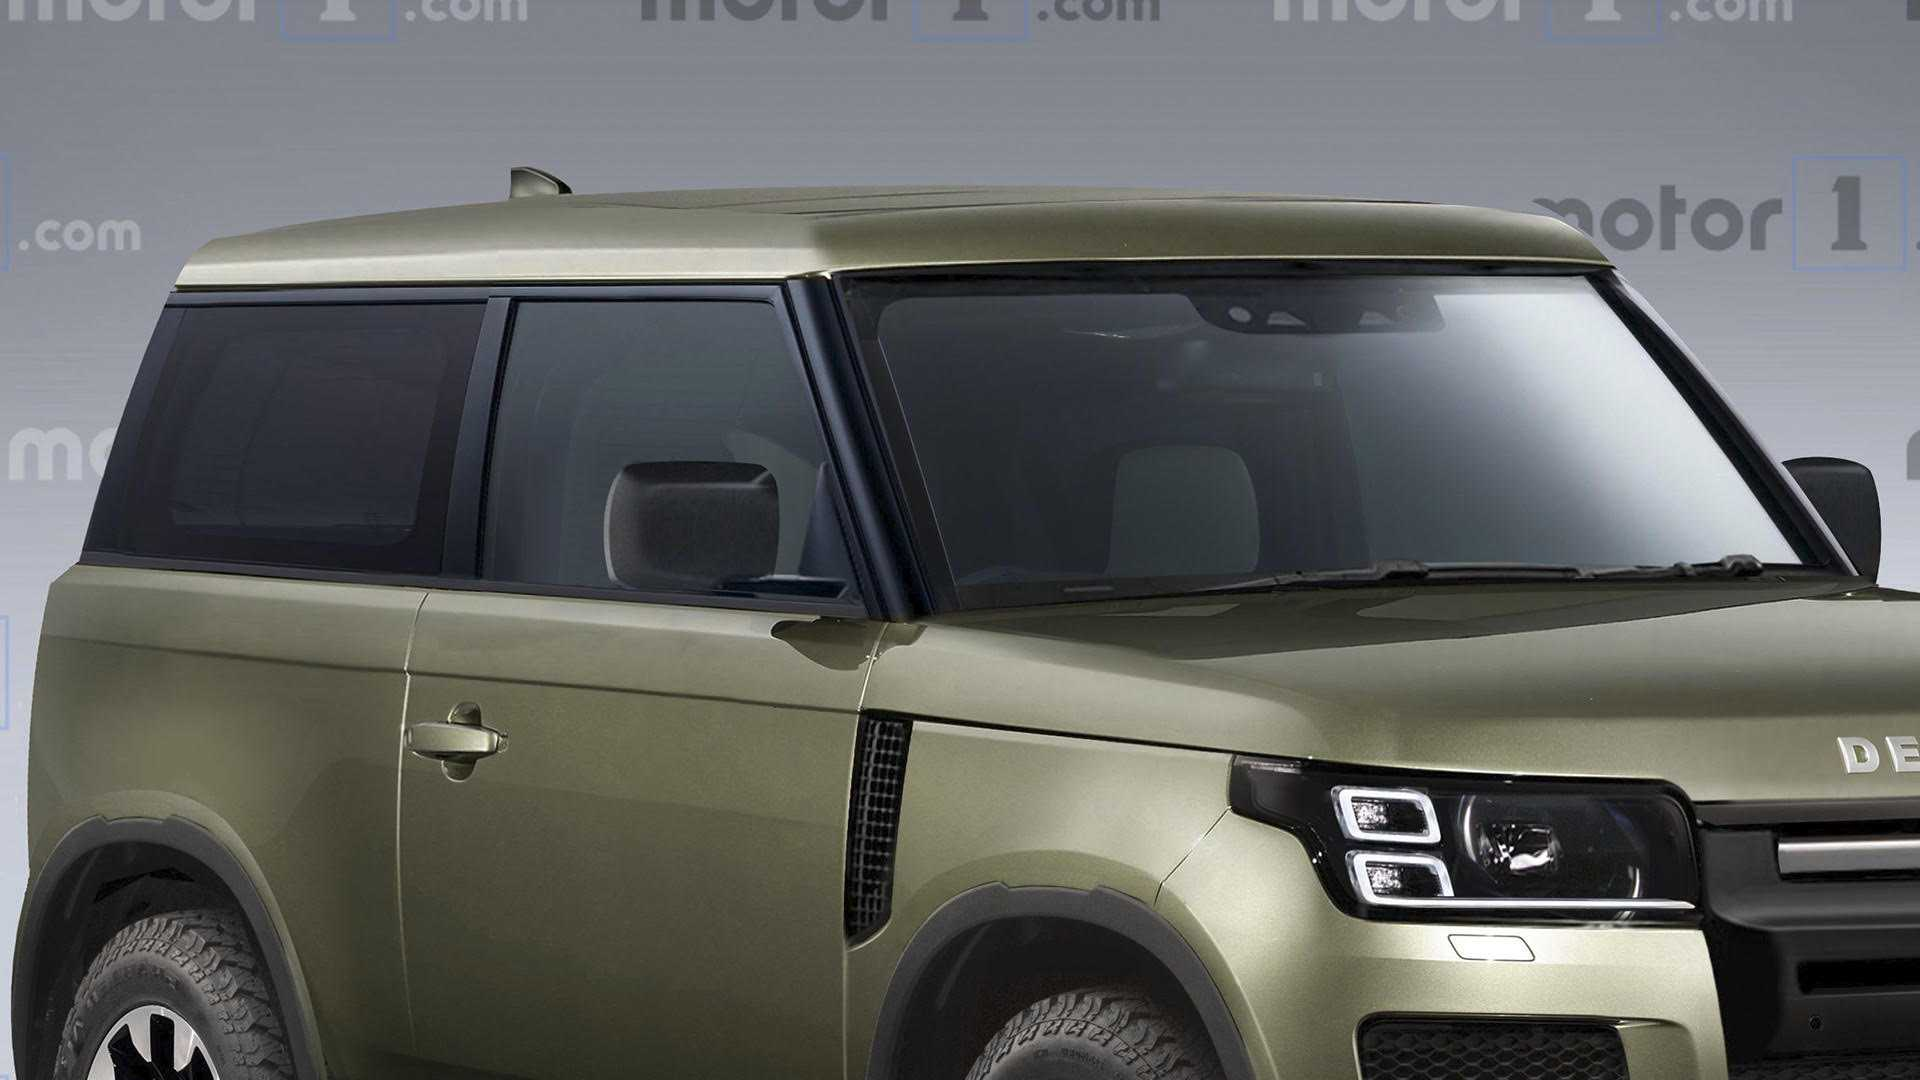 New Land Rover Defender Takes Off All Camo In Exclusive